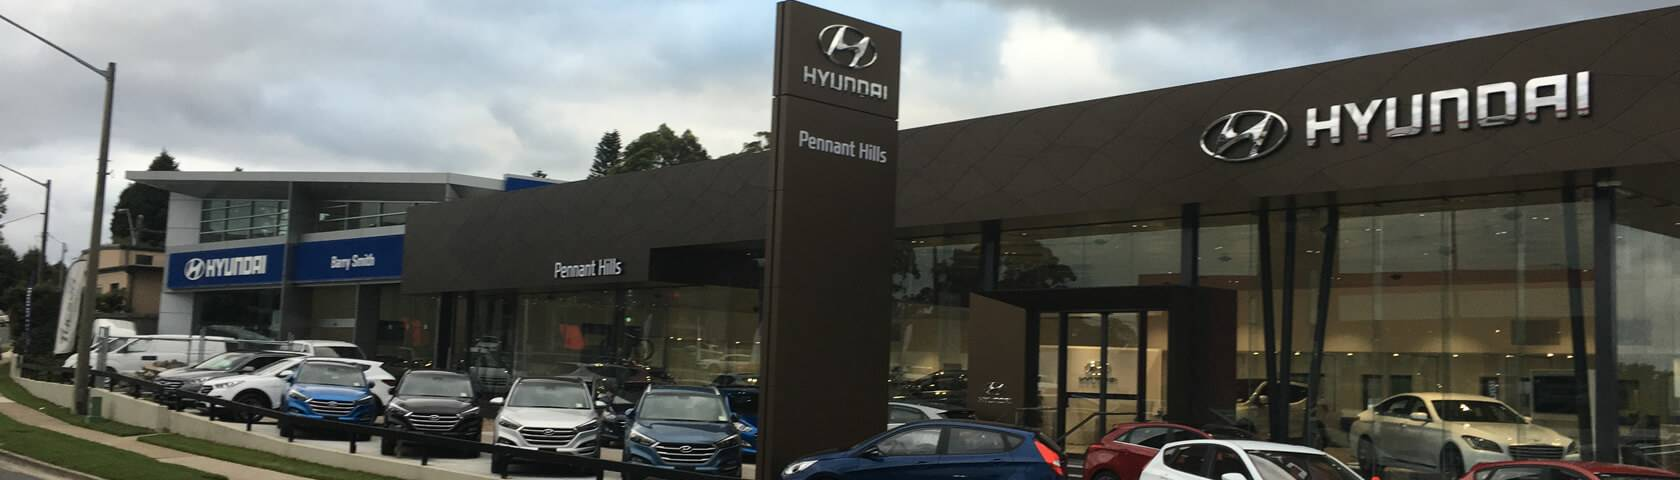 clearwater locations fitzgerald malls auto florida dealerships hyundai